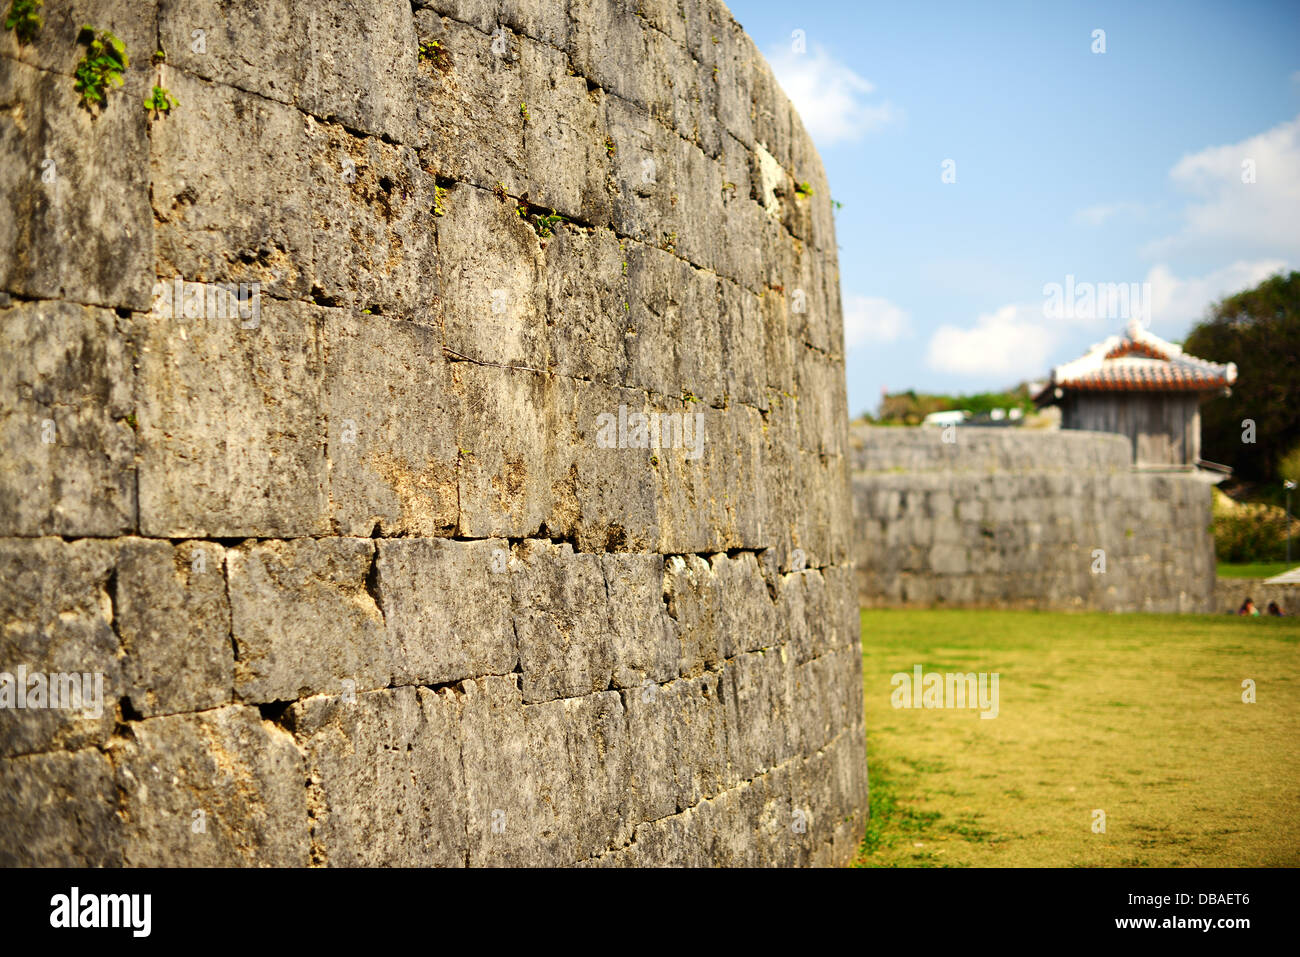 Protective wall on the grounds of Shuri Castle in Naha, Okinawa, Japan. - Stock Image